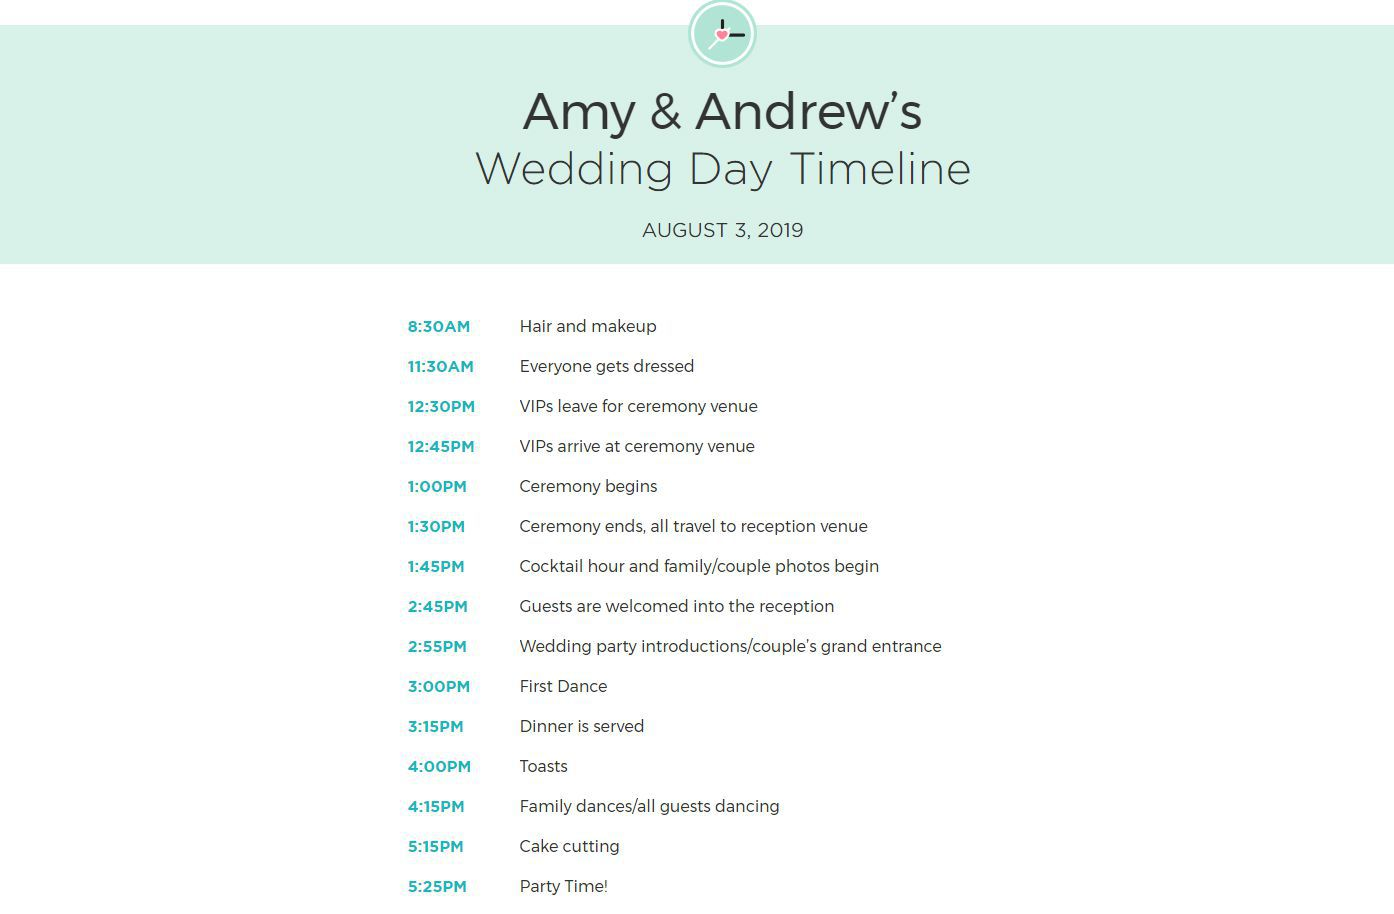 008 Impressive Wedding Weekend Itinerary Template Image  Day Word Reception Timeline ExcelFull